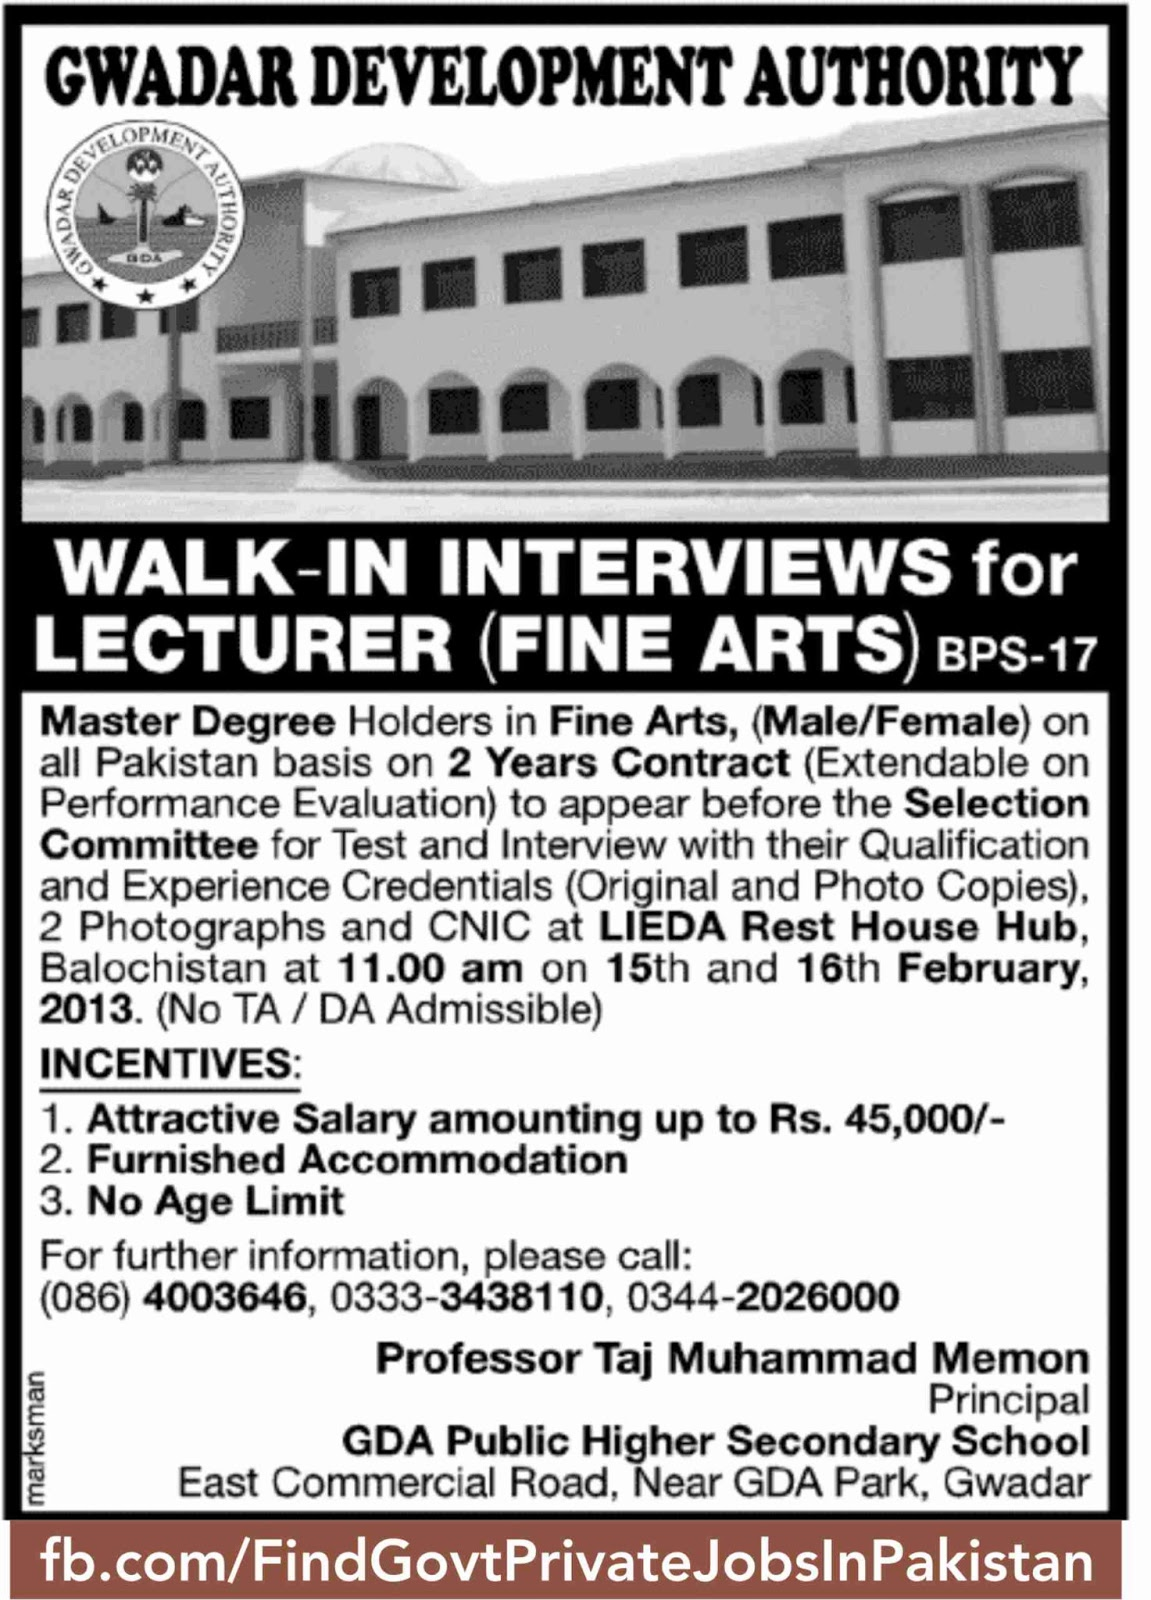 gwadar development authority job ads